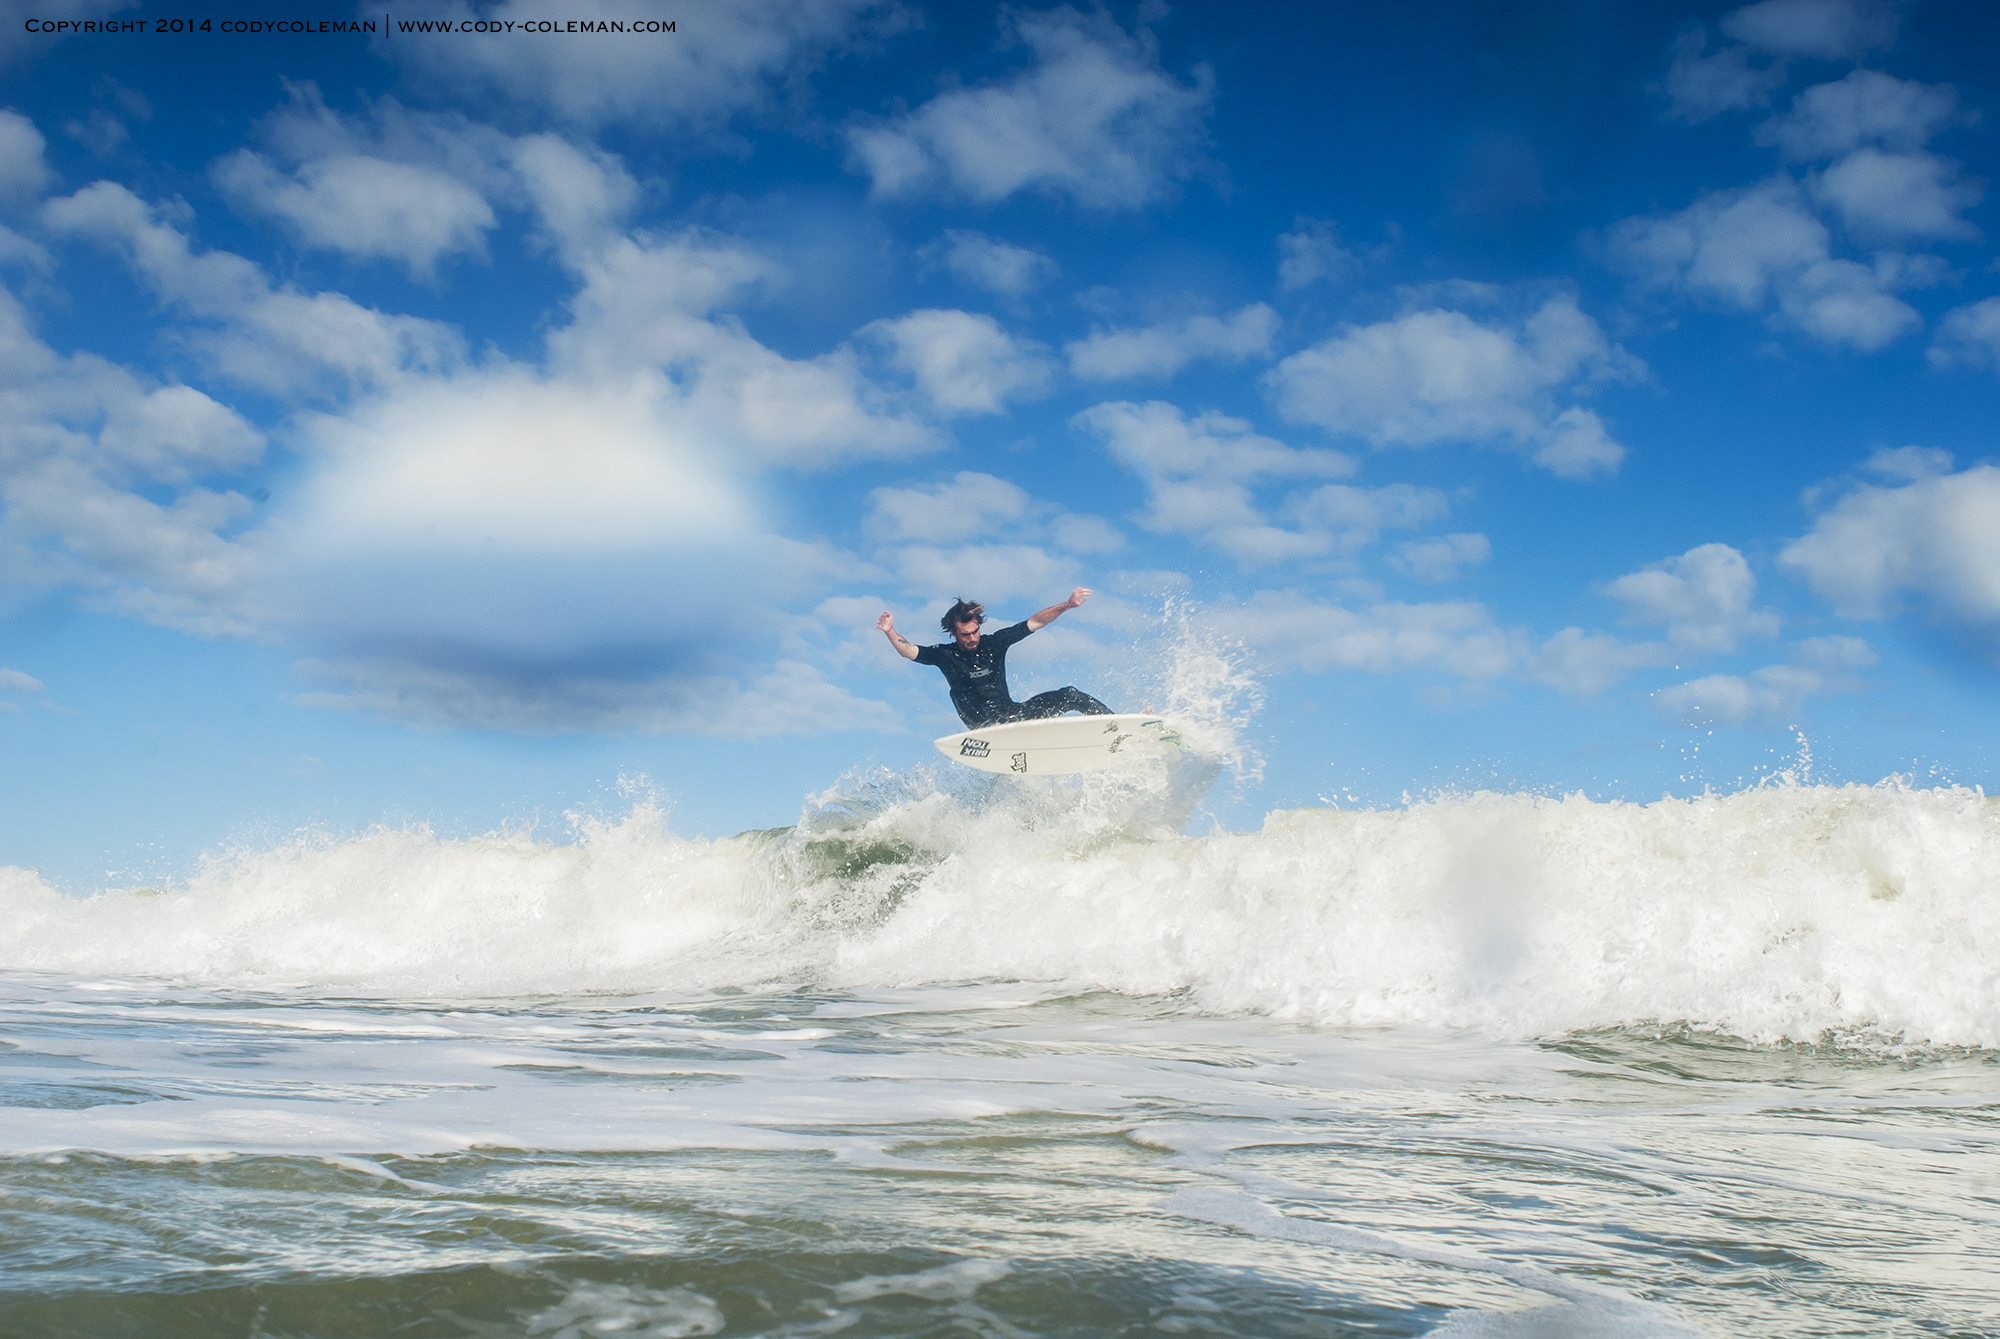 Like I said the clouds were awesome! Surfer | Seth Conboy